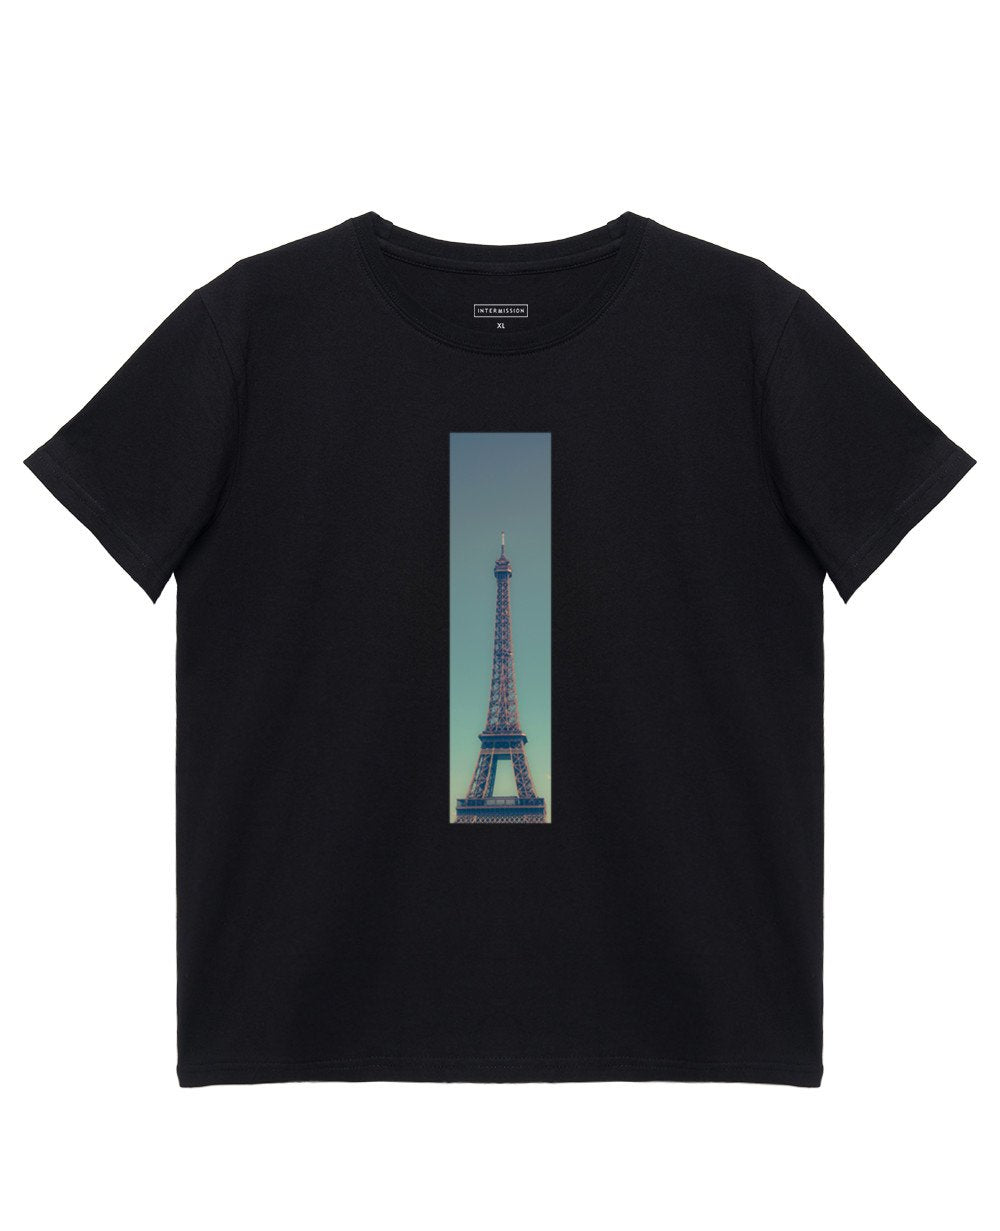 Tower Print T-Shirt in Black - T-Shirts - INTERMISSION - BRANMA